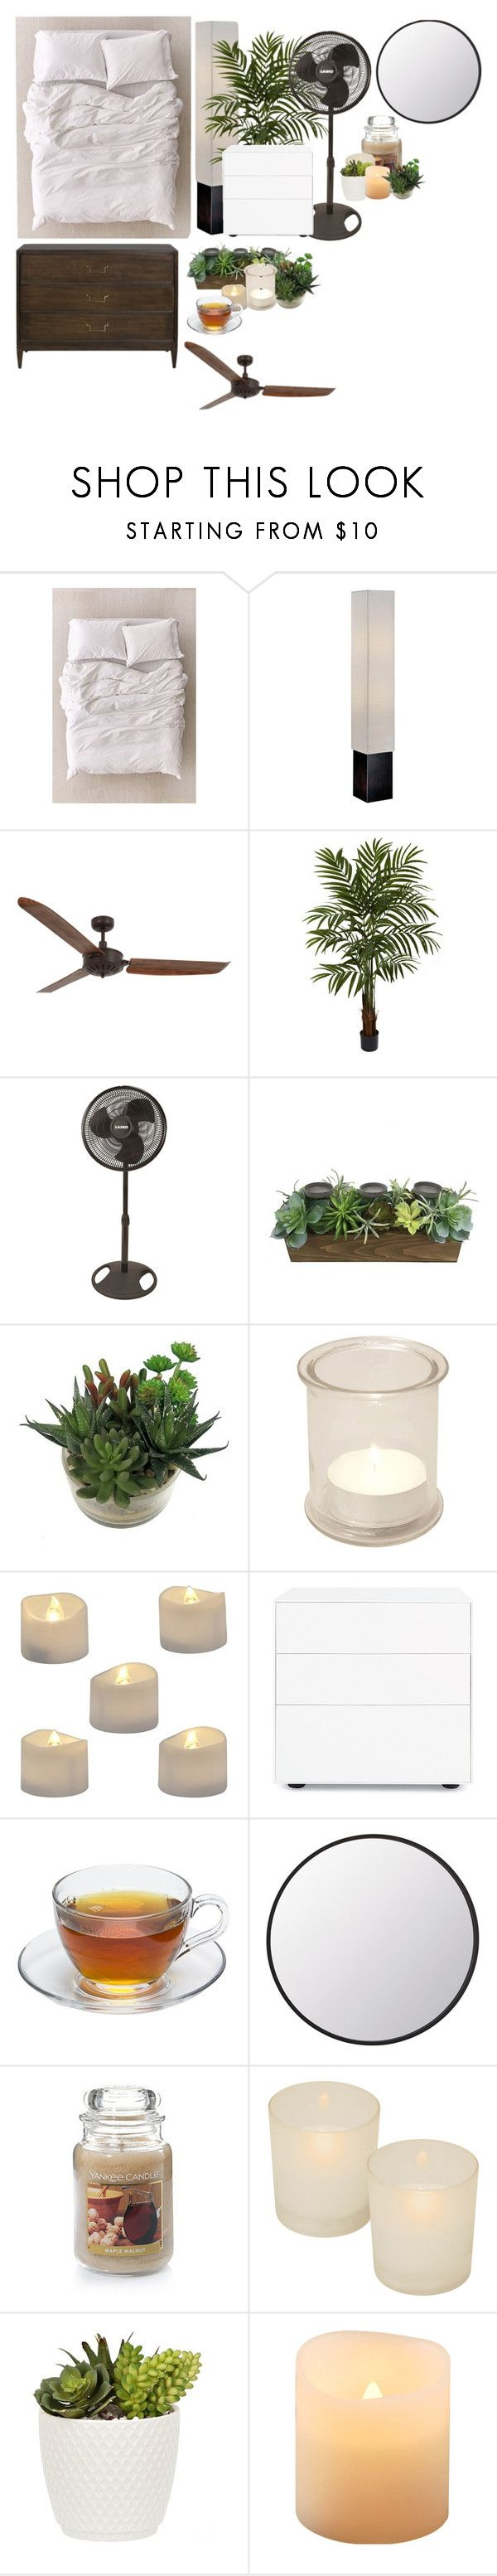 """""""Untitled #426"""" by dalyialashea on Polyvore featuring interior, interiors, interior design, home, home decor, interior decorating, Urban Outfitters, Lite Source, Lucci Air and Nearly Natural"""